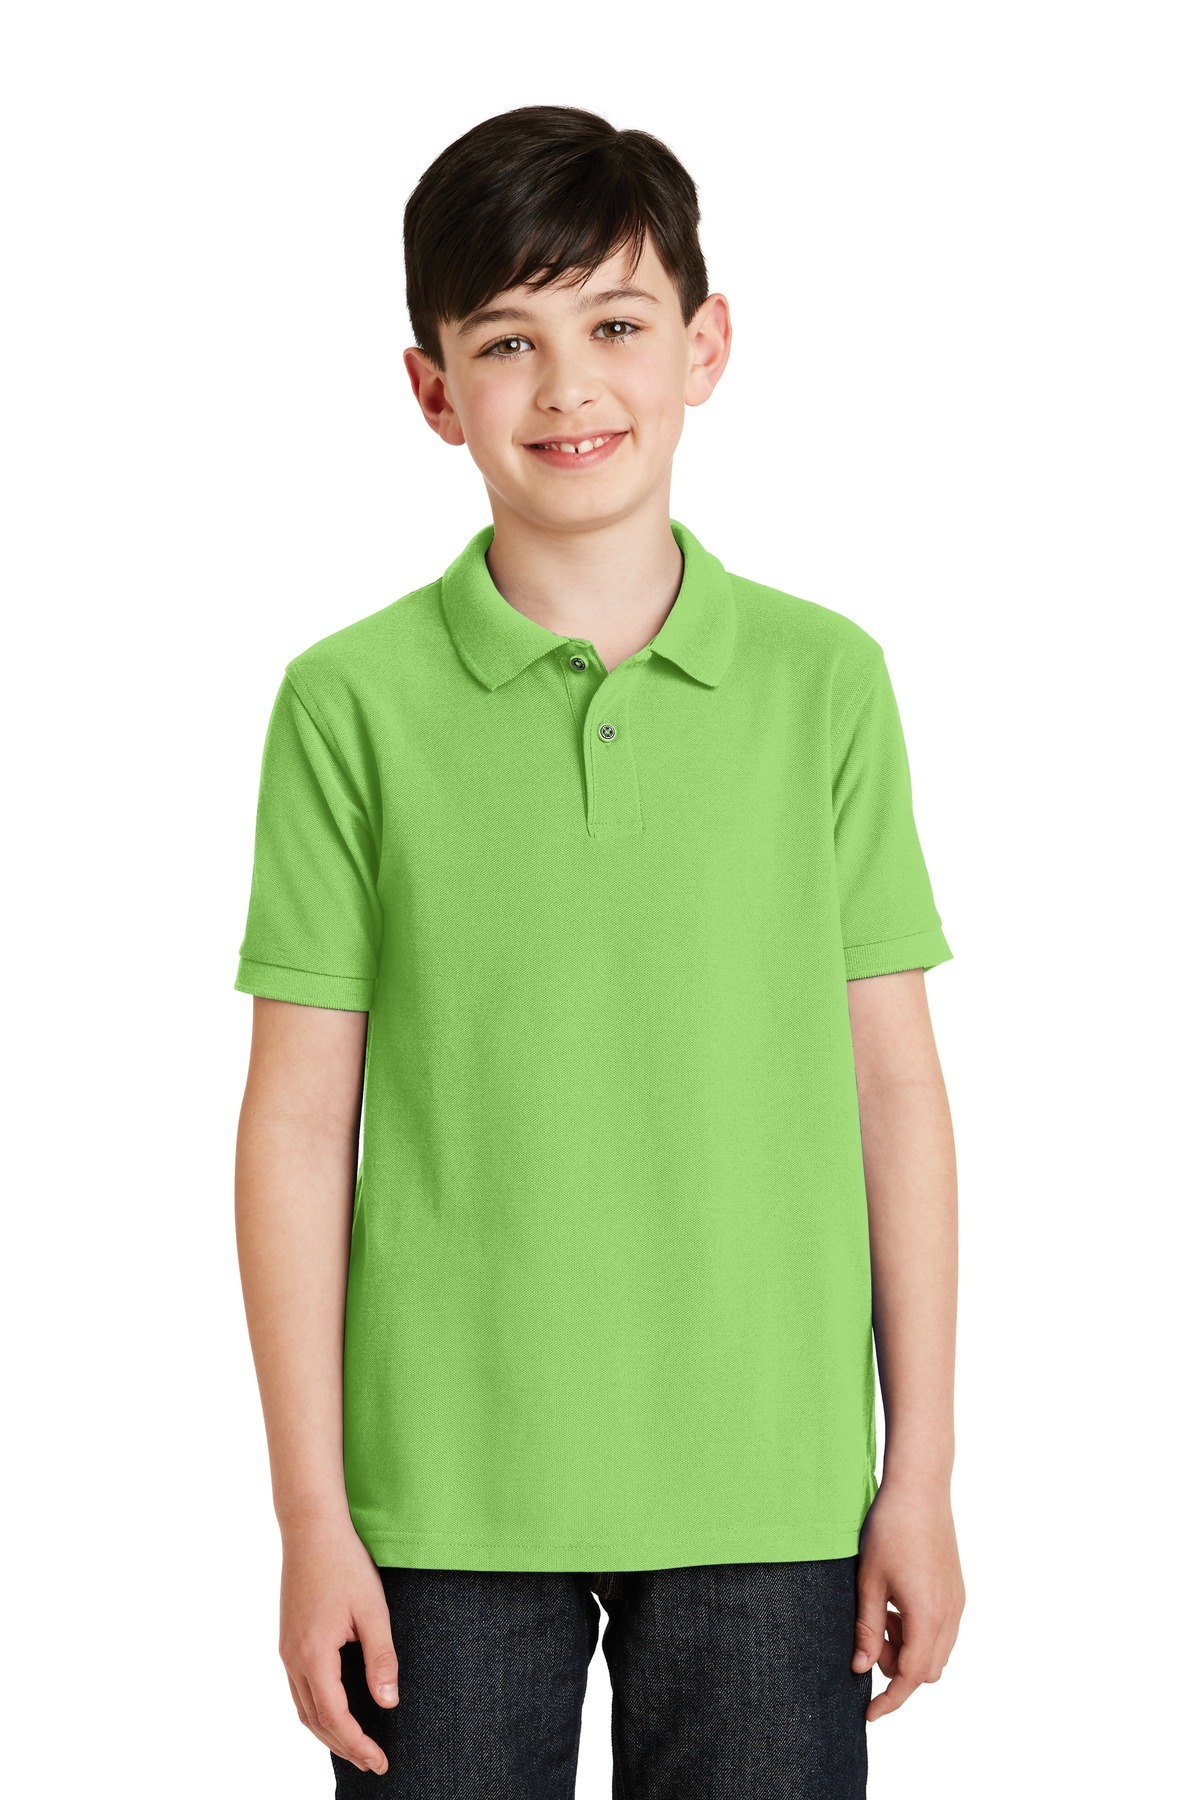 Port Authority ®  Youth Silk Touch™ Polo.  Y500 - Lime